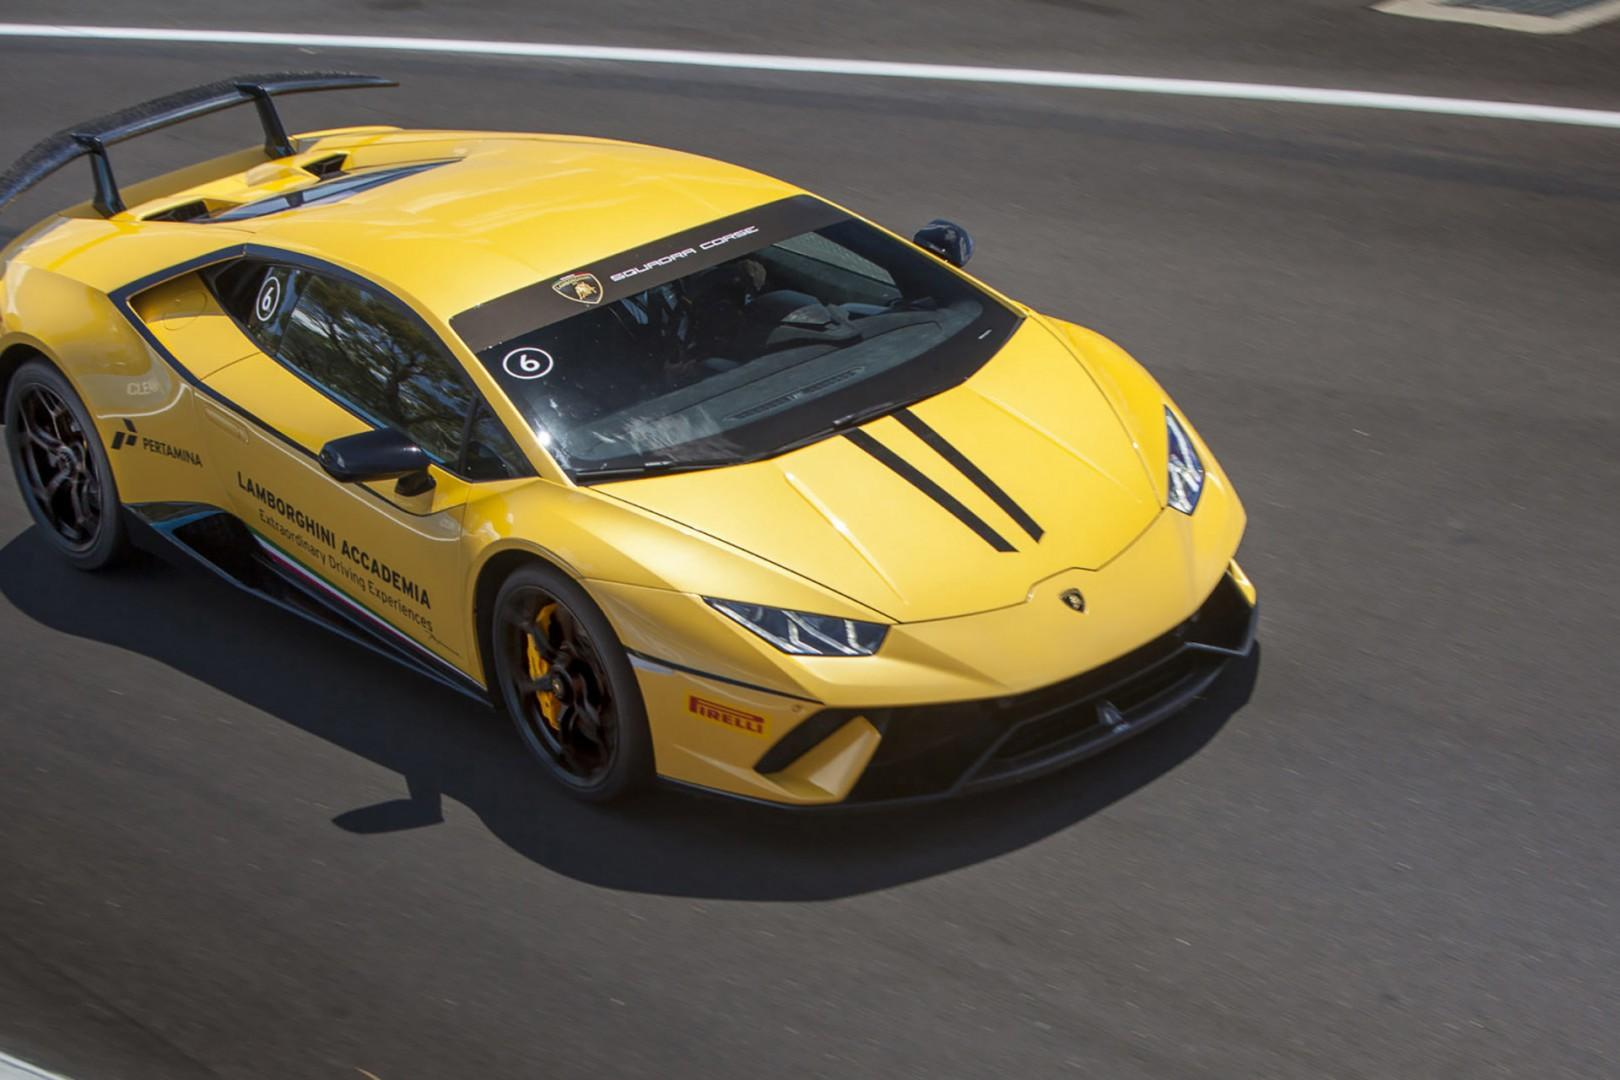 Motor Valley is here where you can visit and even drive vehicles from Lamborghini, Ducati etc.